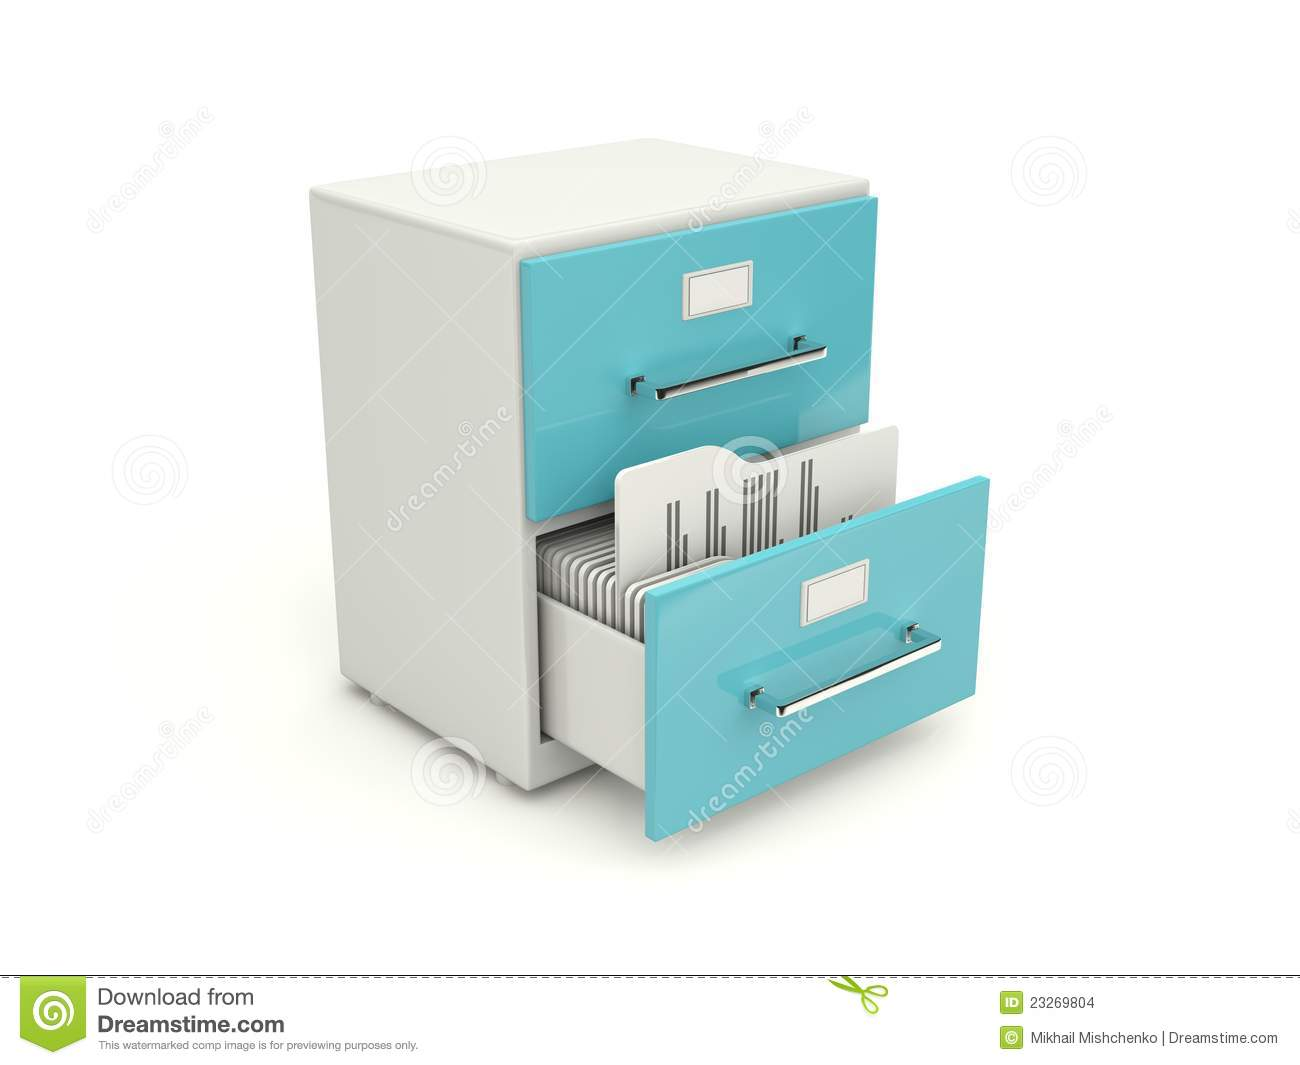 Download Blue archive cabinet icon stock illustration. Illustration of folder - 23269804  sc 1 st  Dreamstime.com & Blue archive cabinet icon stock illustration. Illustration of folder ...